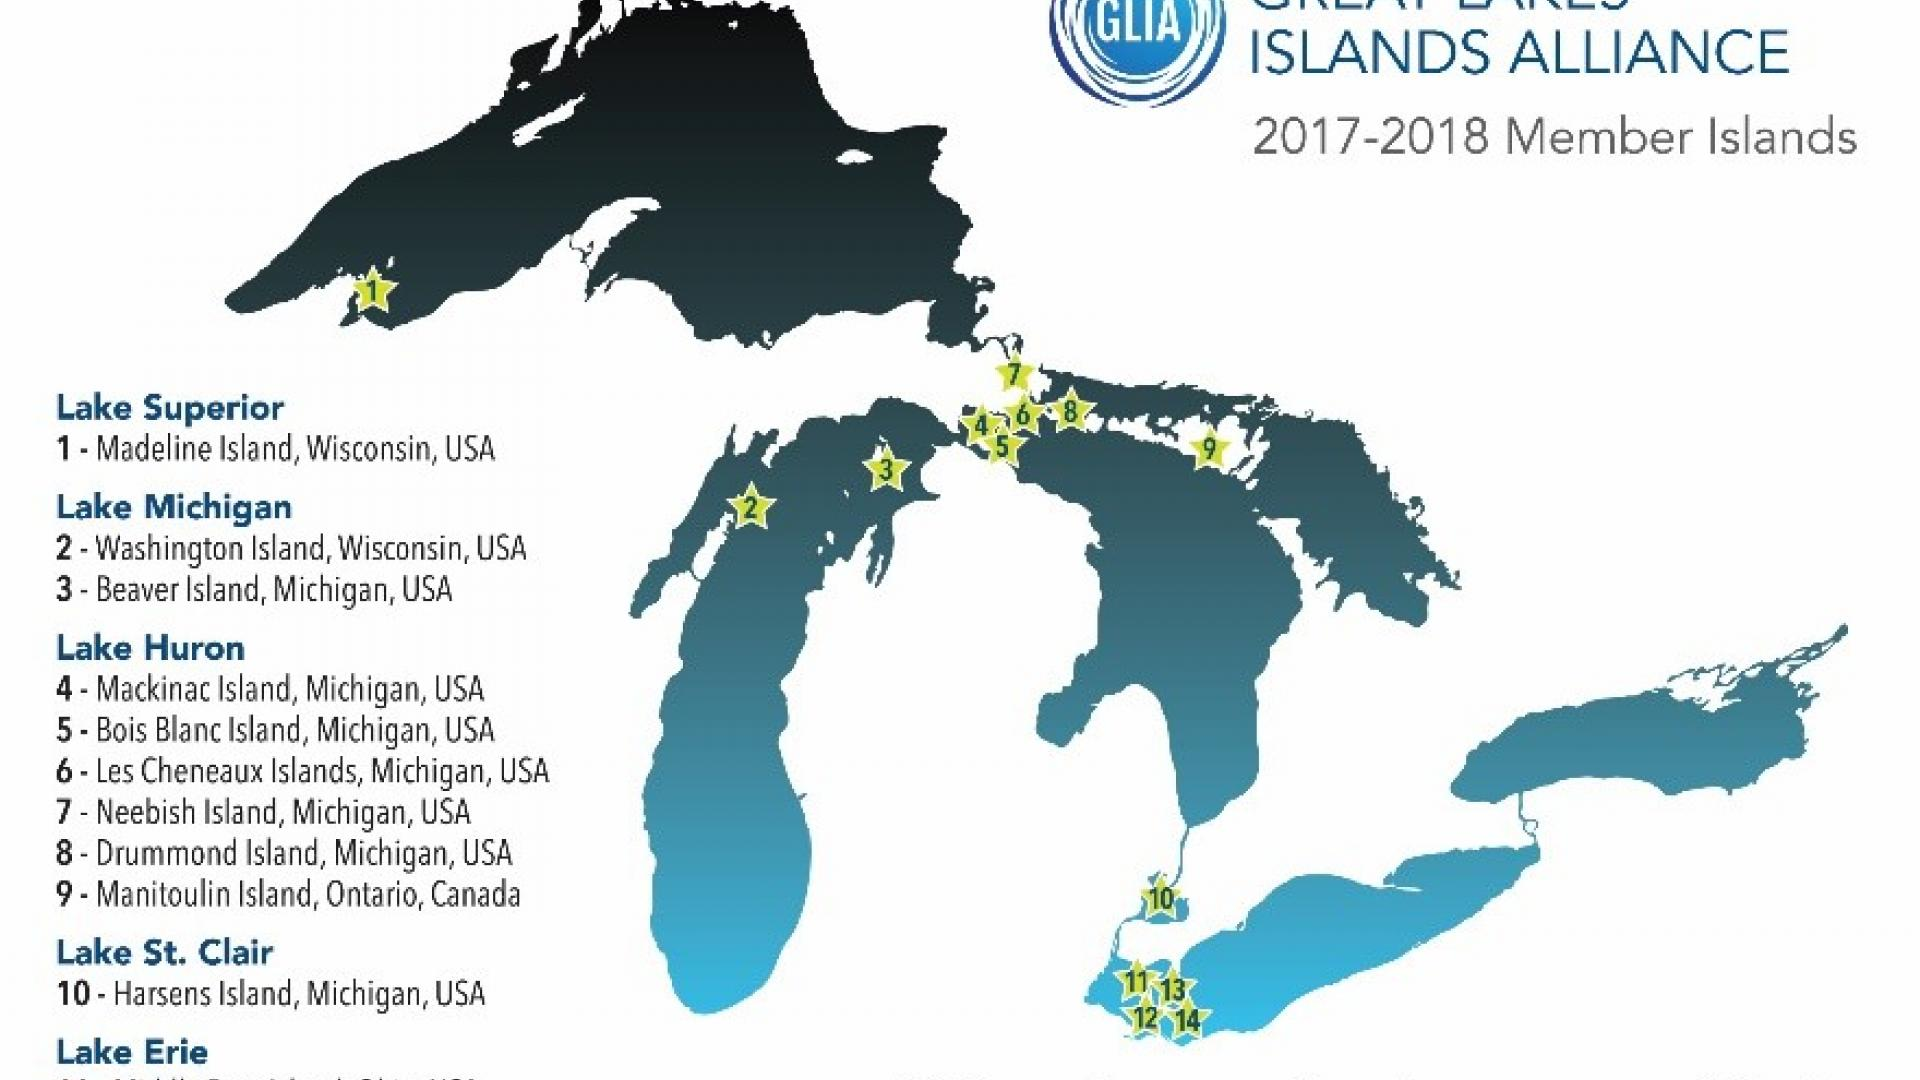 New Great Lakes Island Alliance Connects Communities